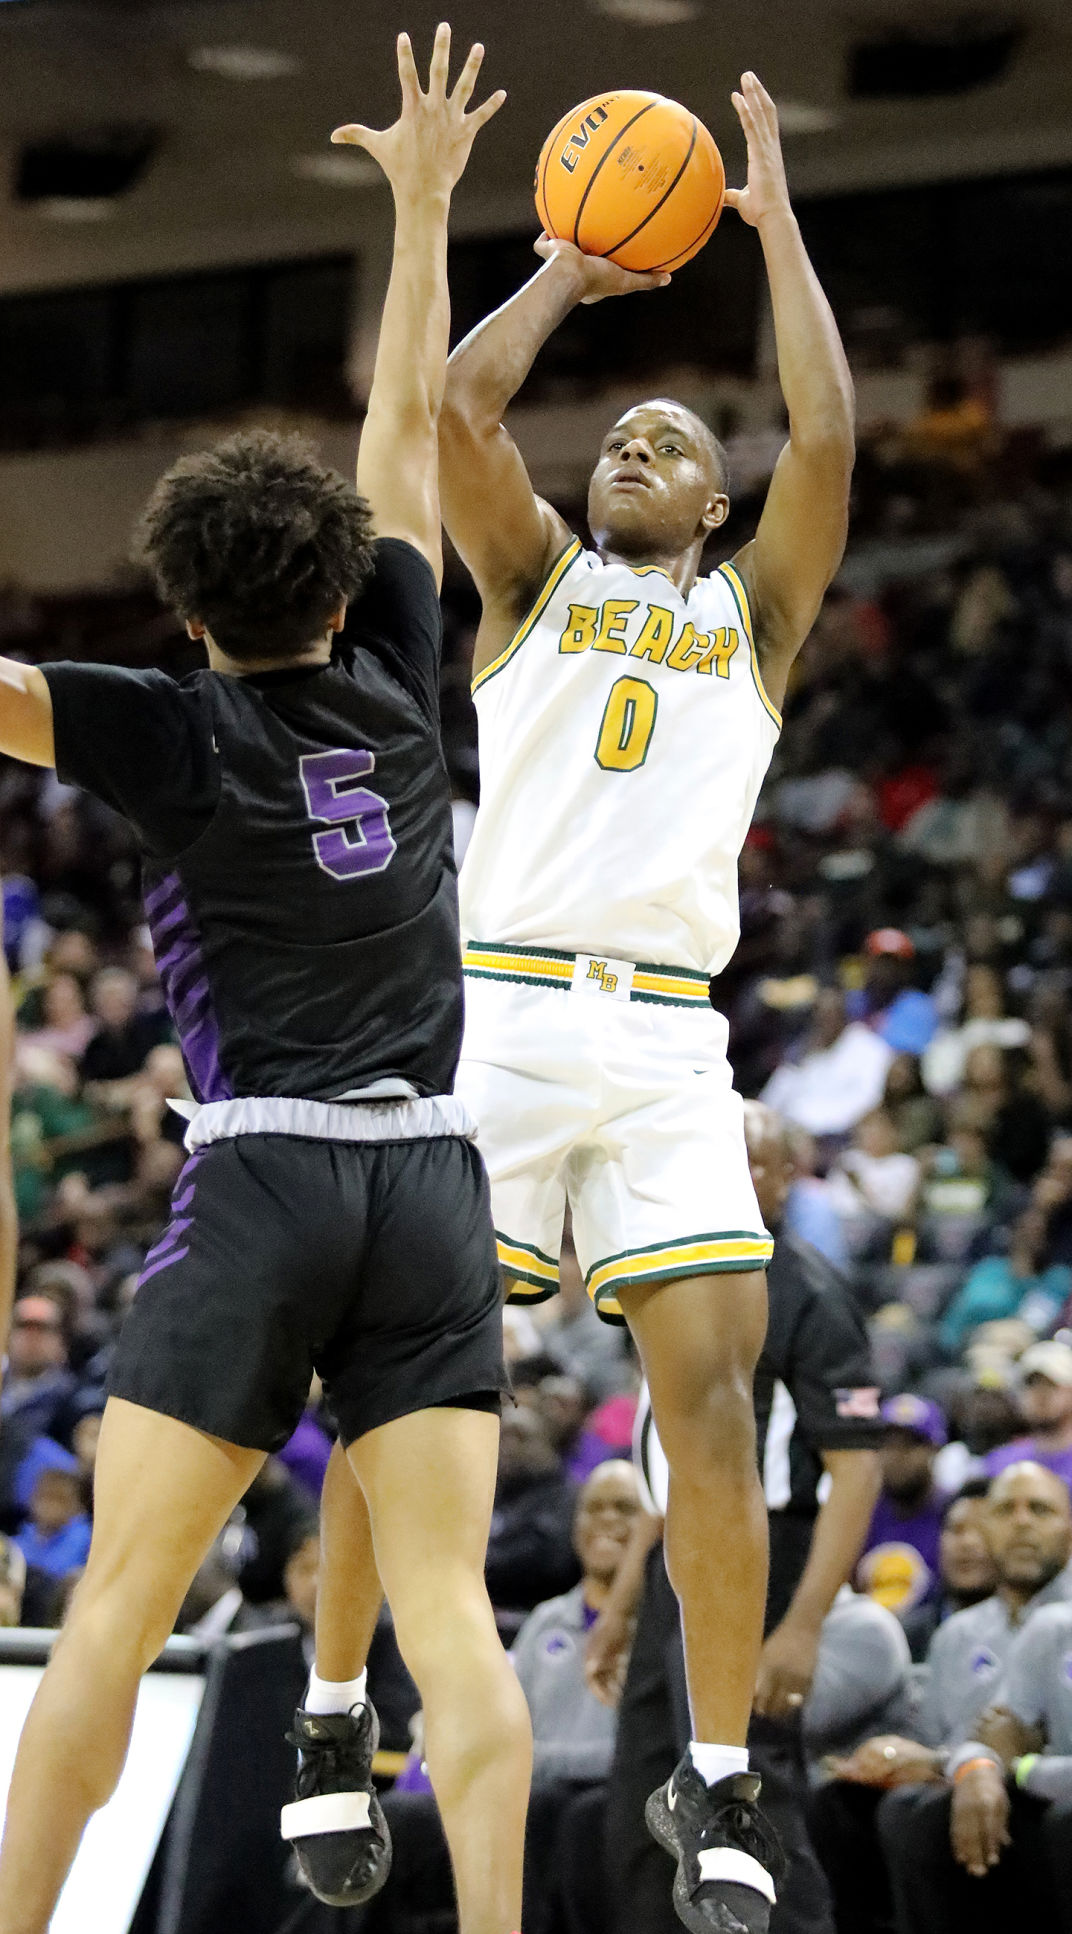 Myrtle Beach Falls To Ridge View In The State Championship